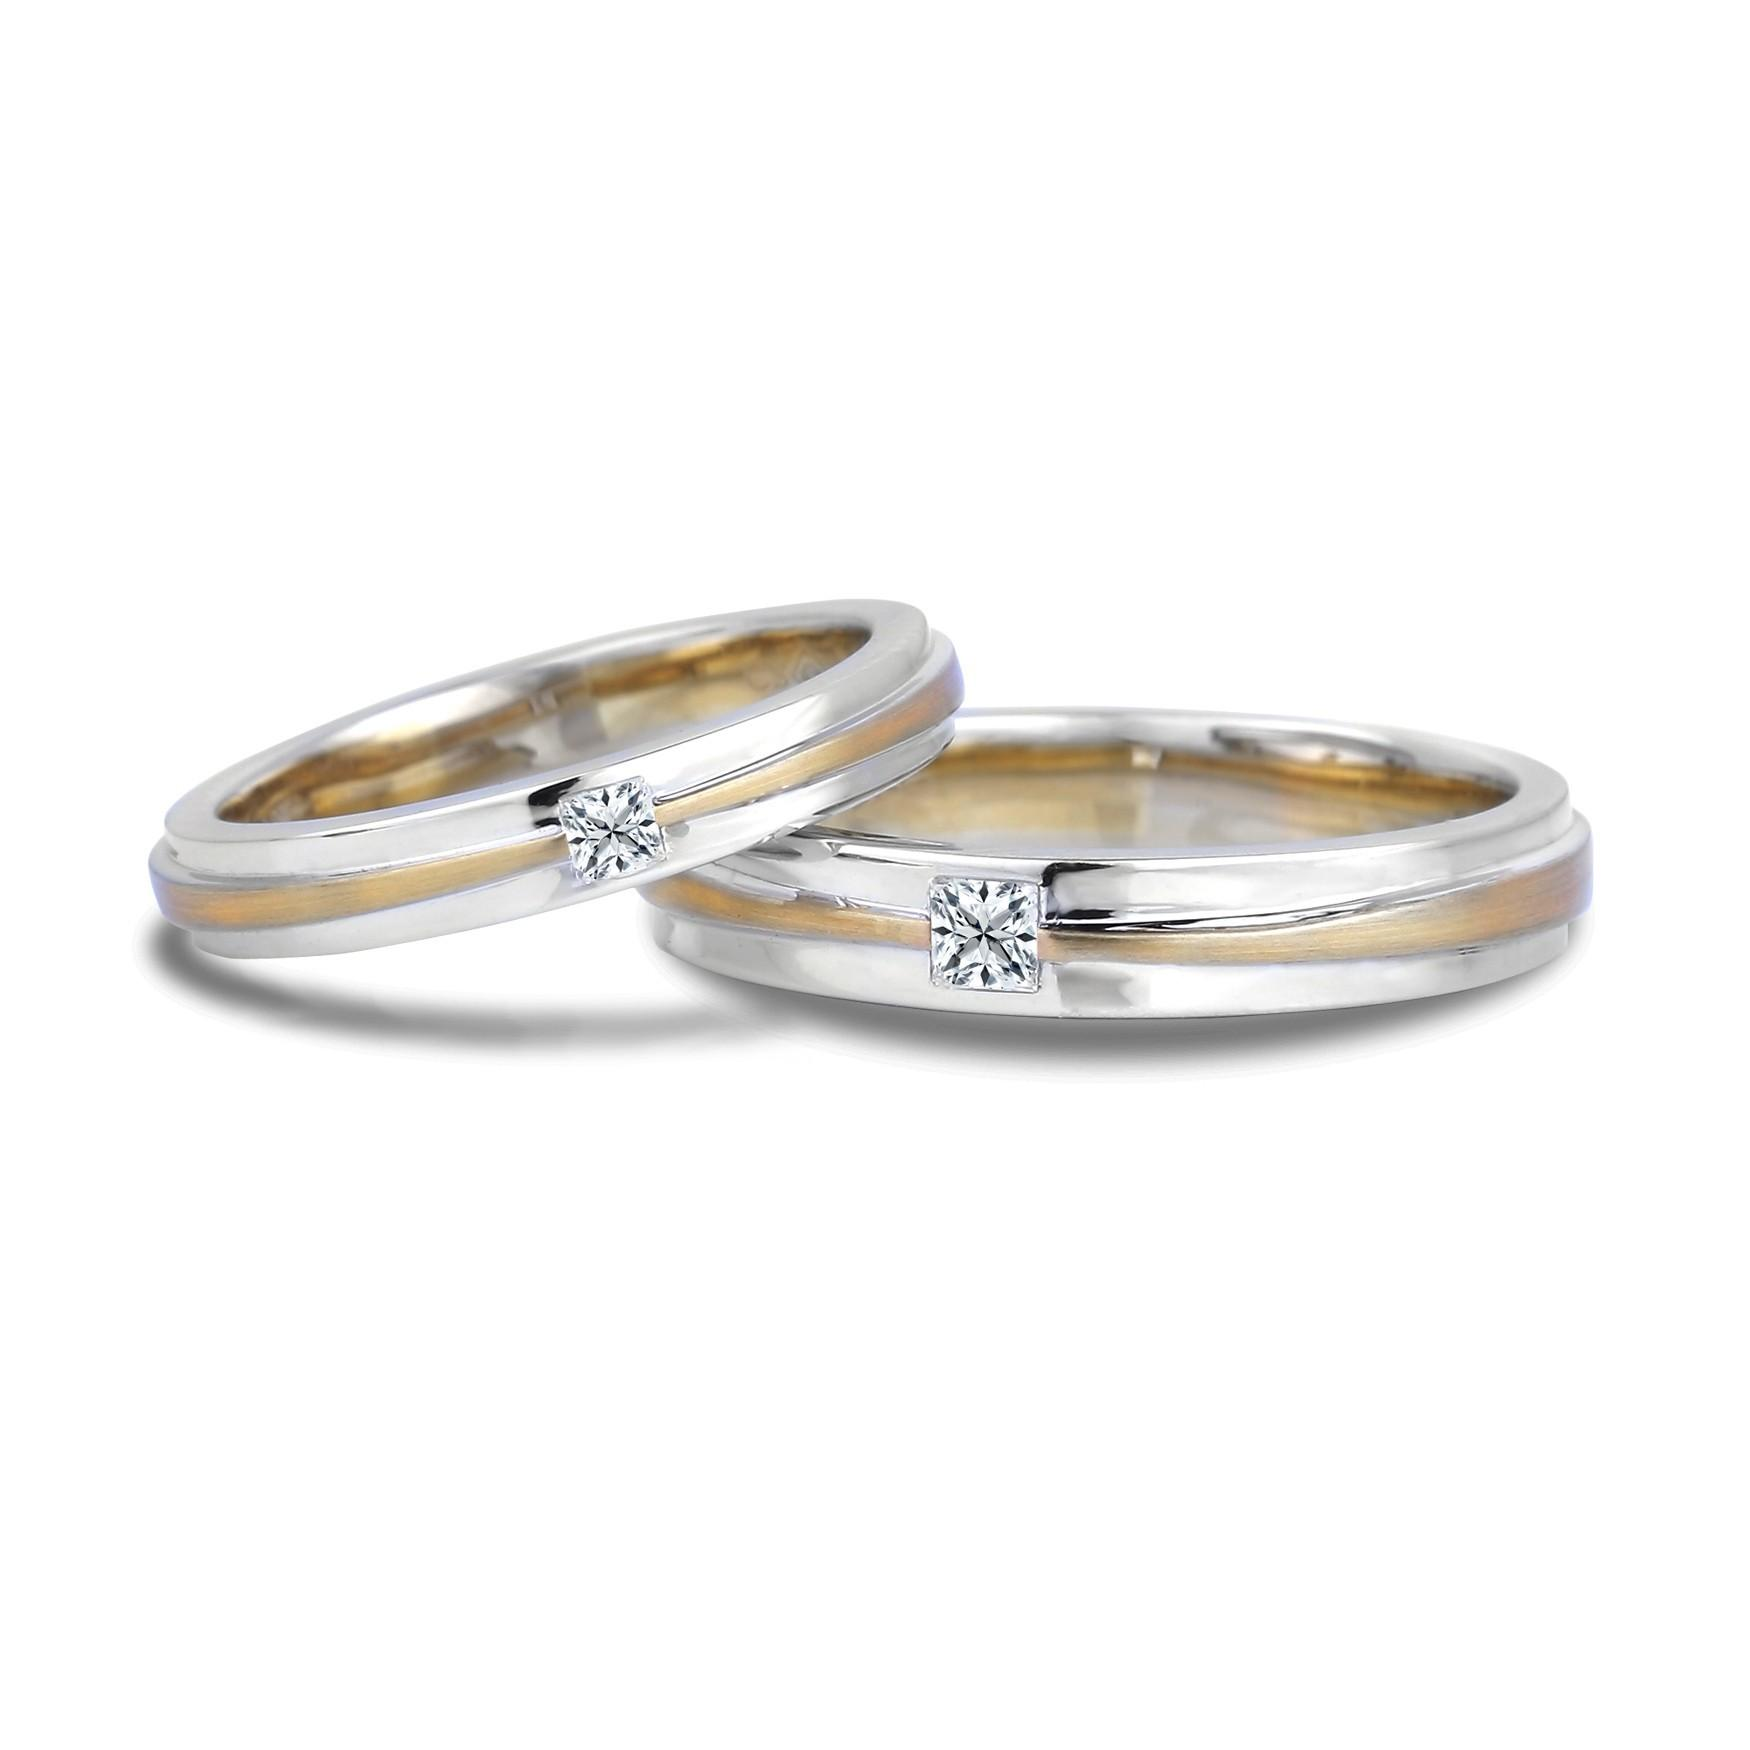 Lugaro His Hers Matching Wedding Bands